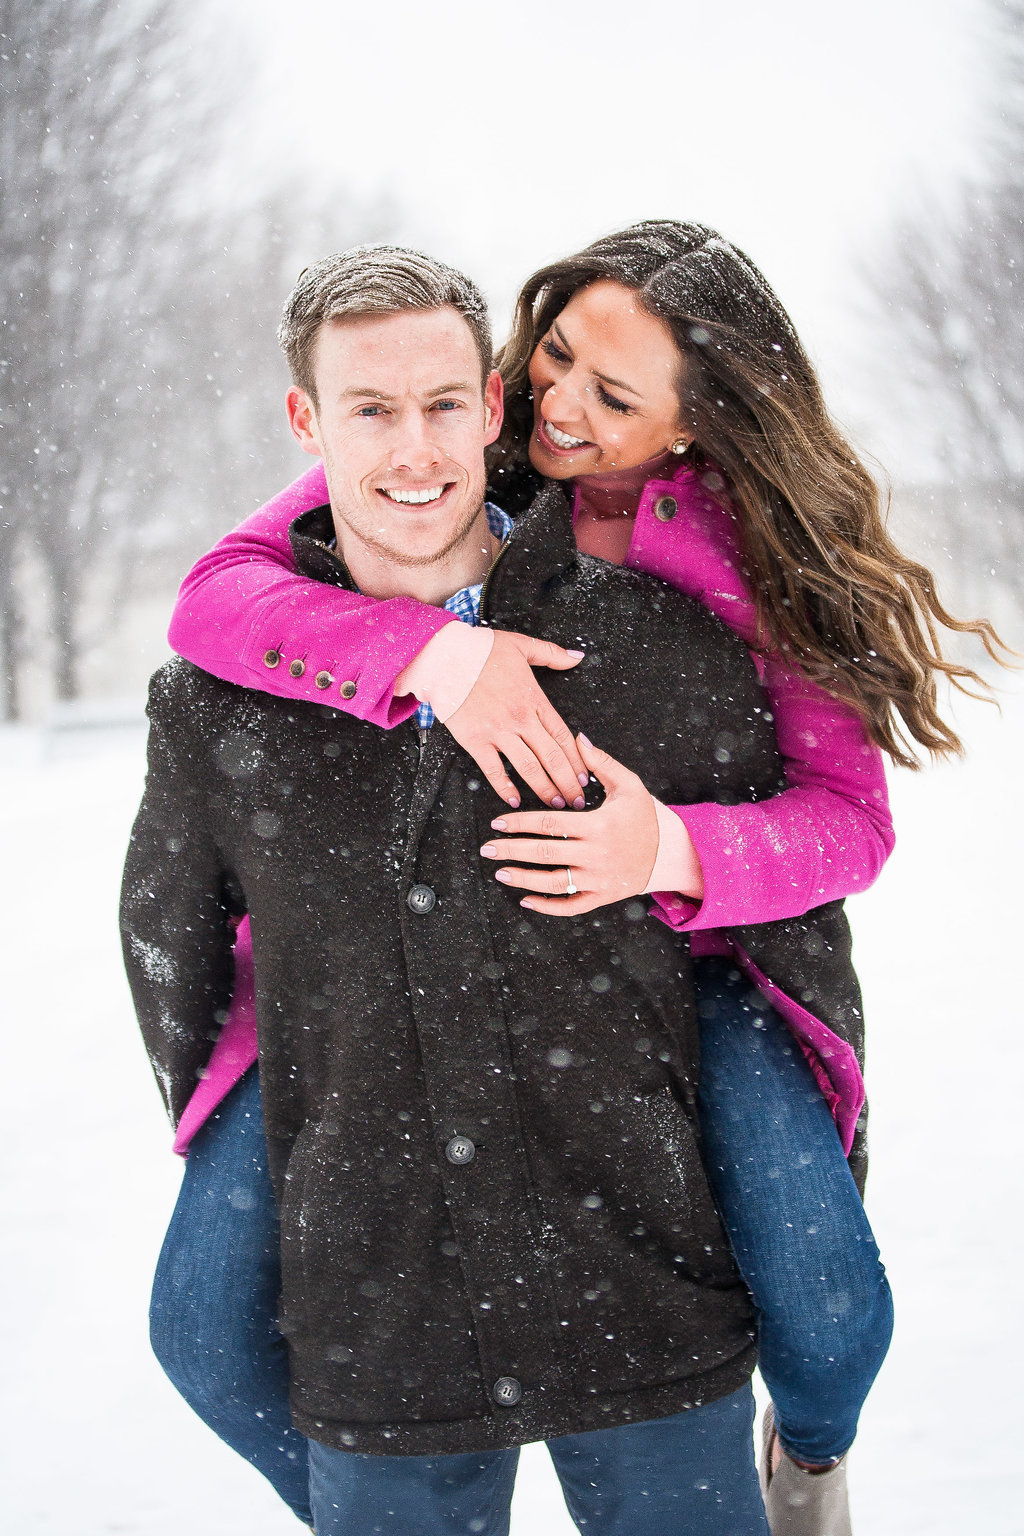 Millennium Park Chicago Illinois Winter Engagement Photographer Taylor Ingles 41